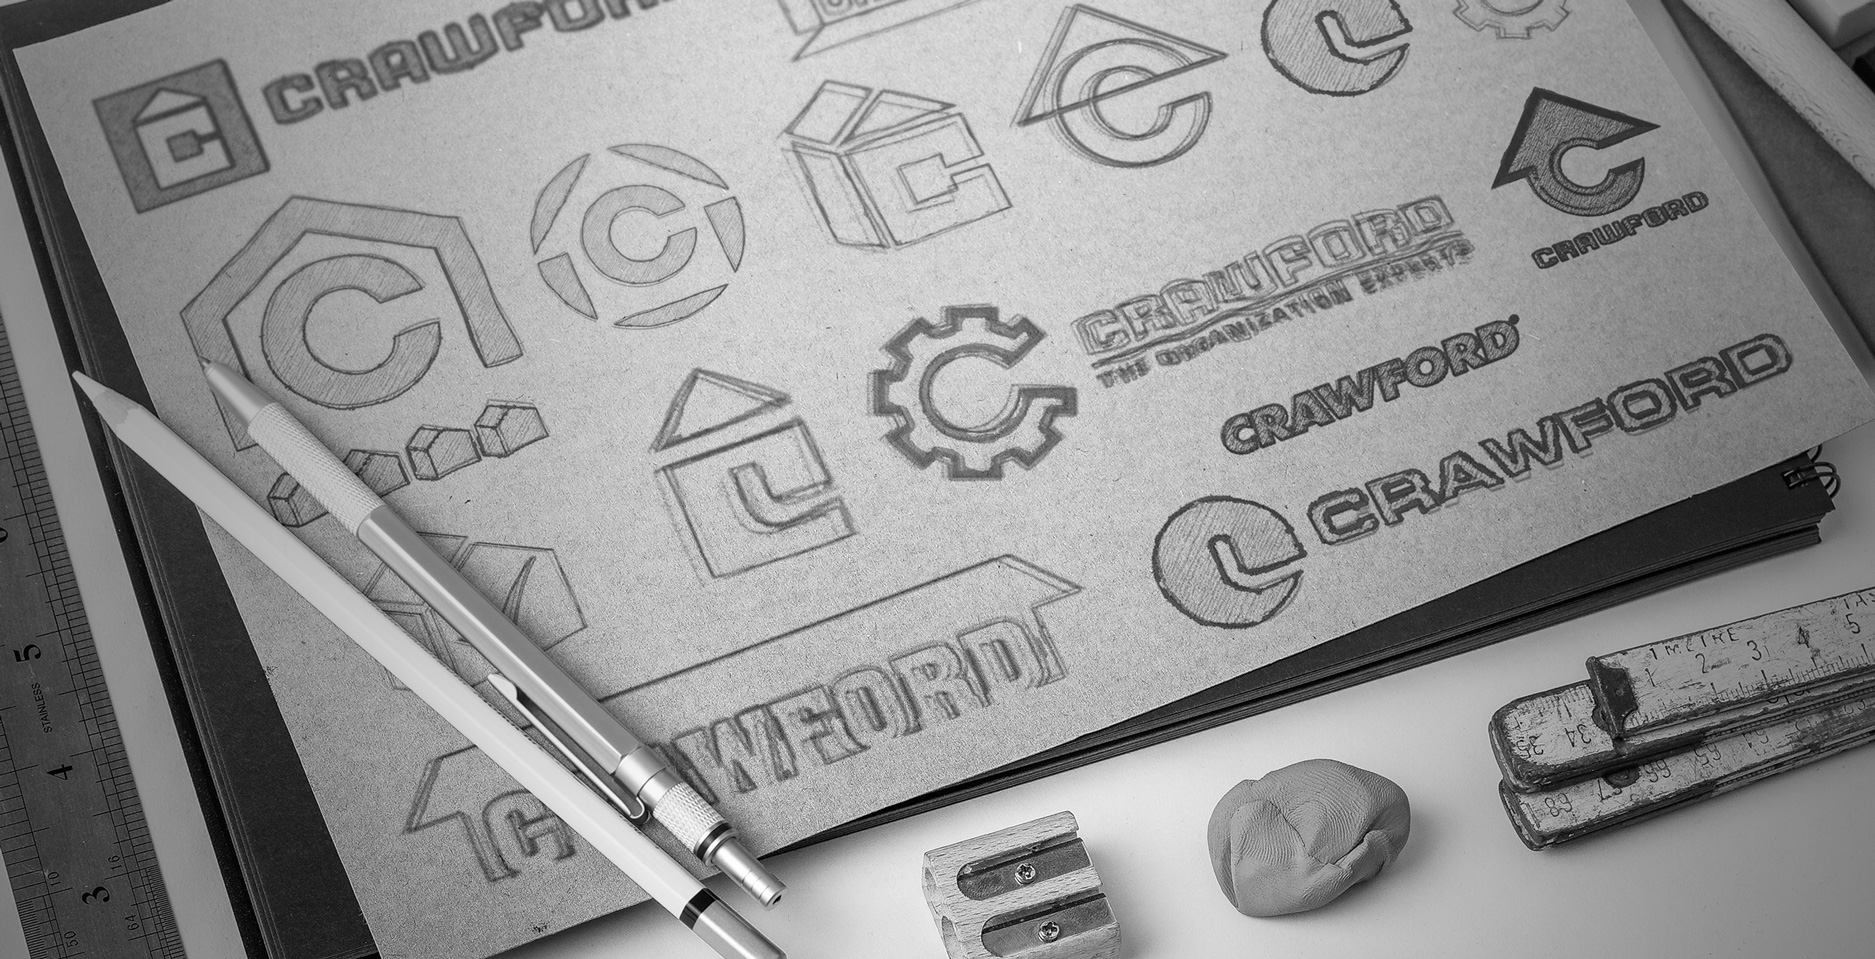 crawford-sketch-logo-design-concept-drawings-brand-identity-rebrand-mark-logotipo-graphic-design-home-garage-packaging-design-construction-industrial